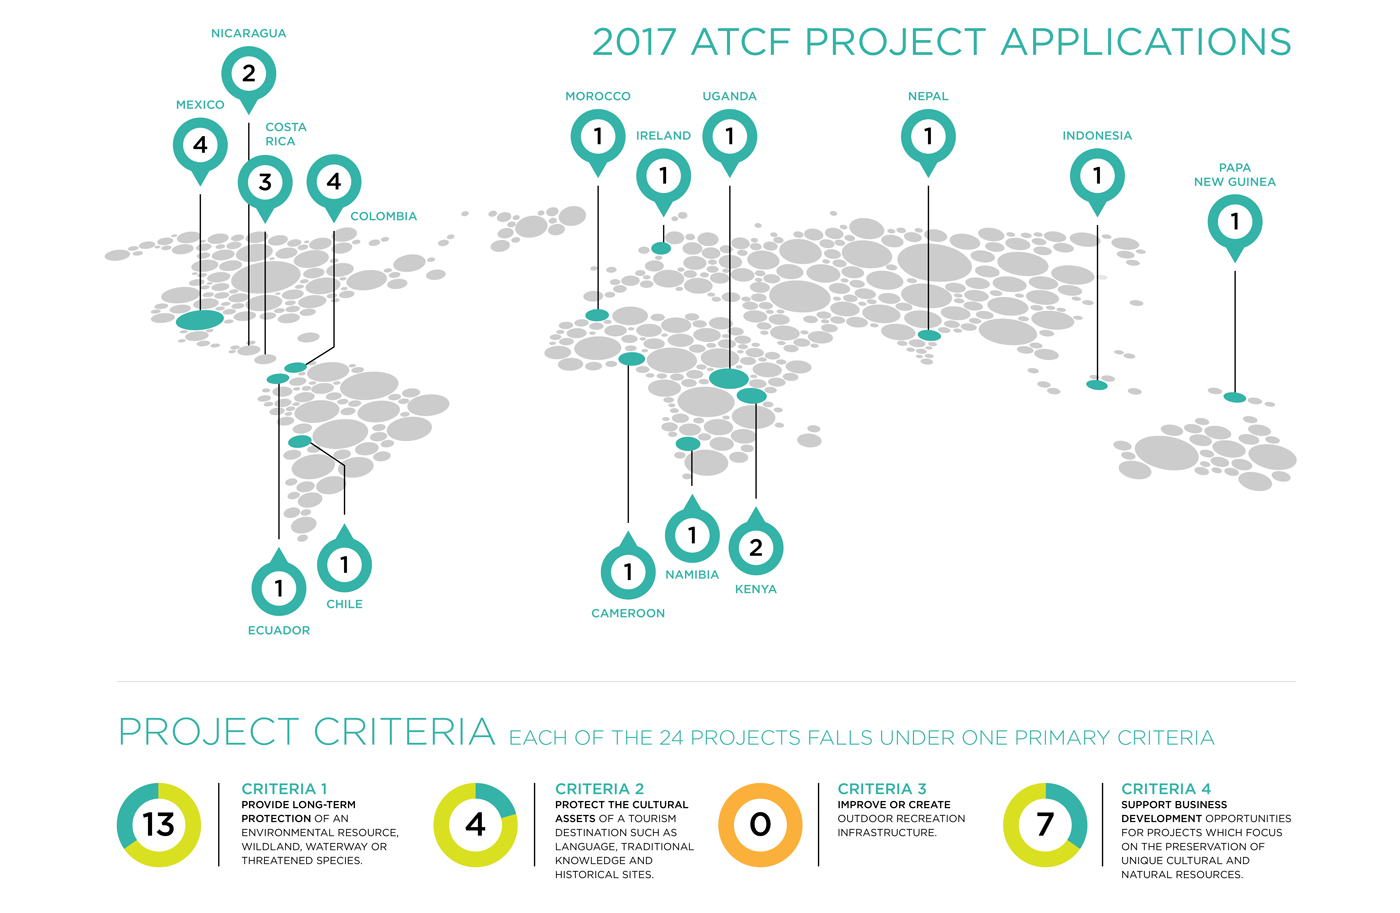 2017 ATCF Project Applications